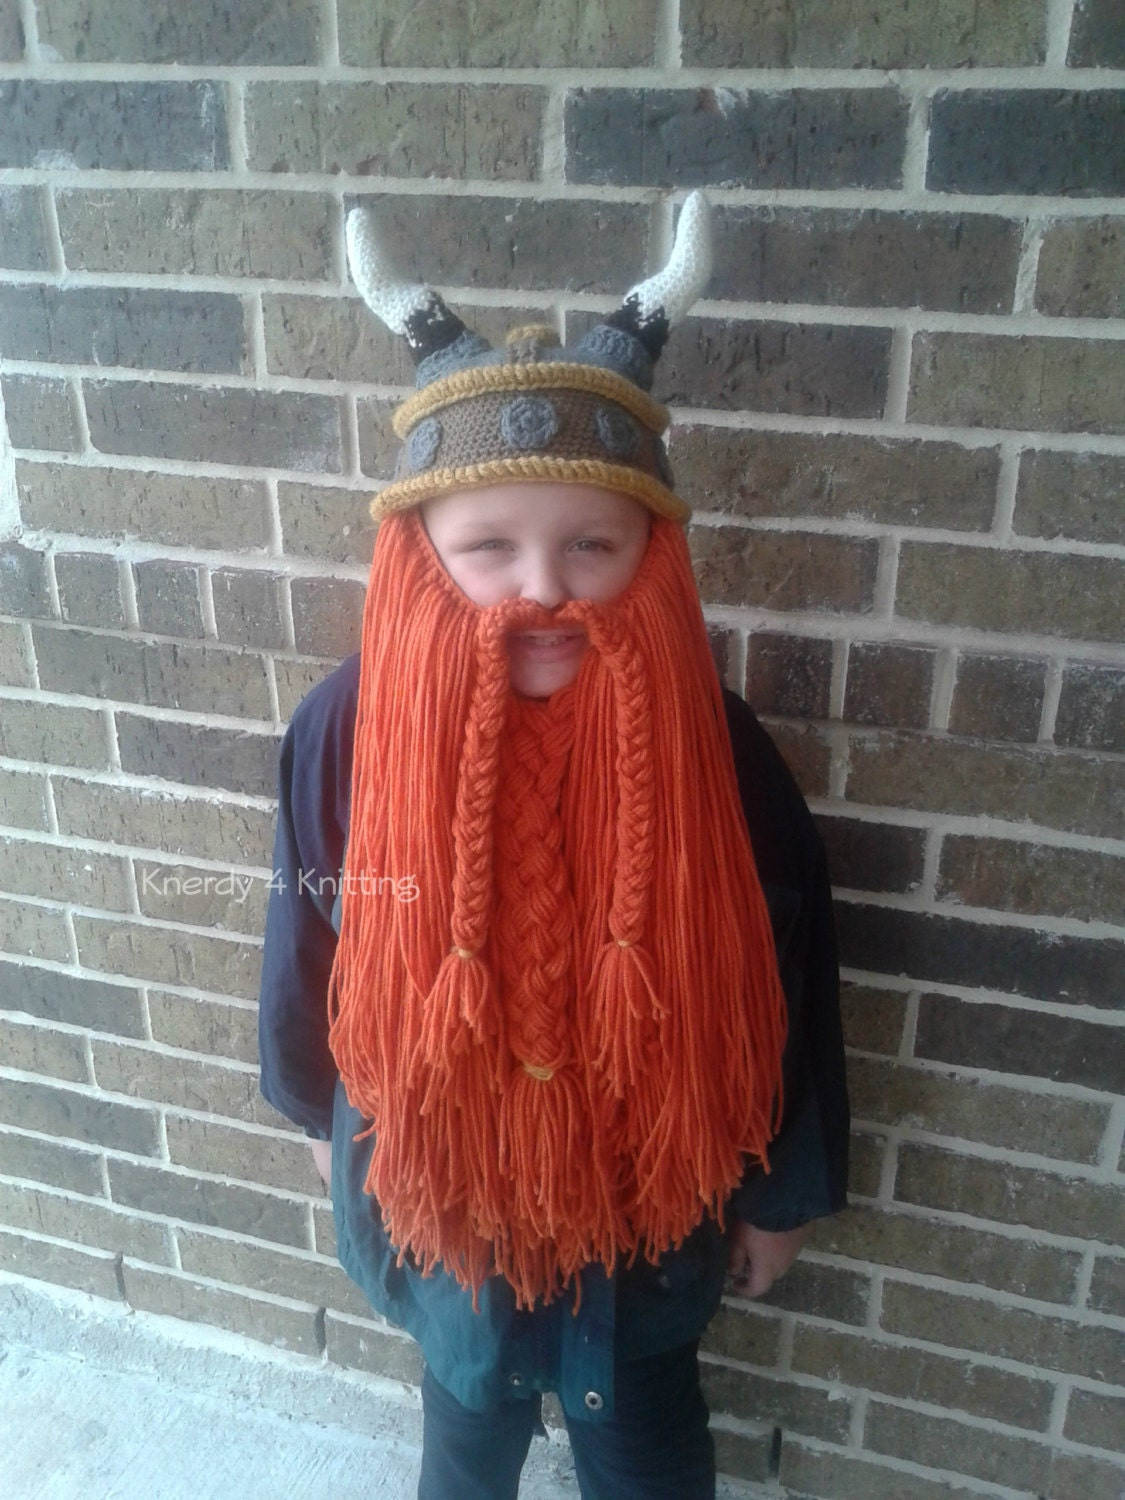 Crochet Viking Hat Bearded Viking Hat Ready to by Knerdy4Knitting